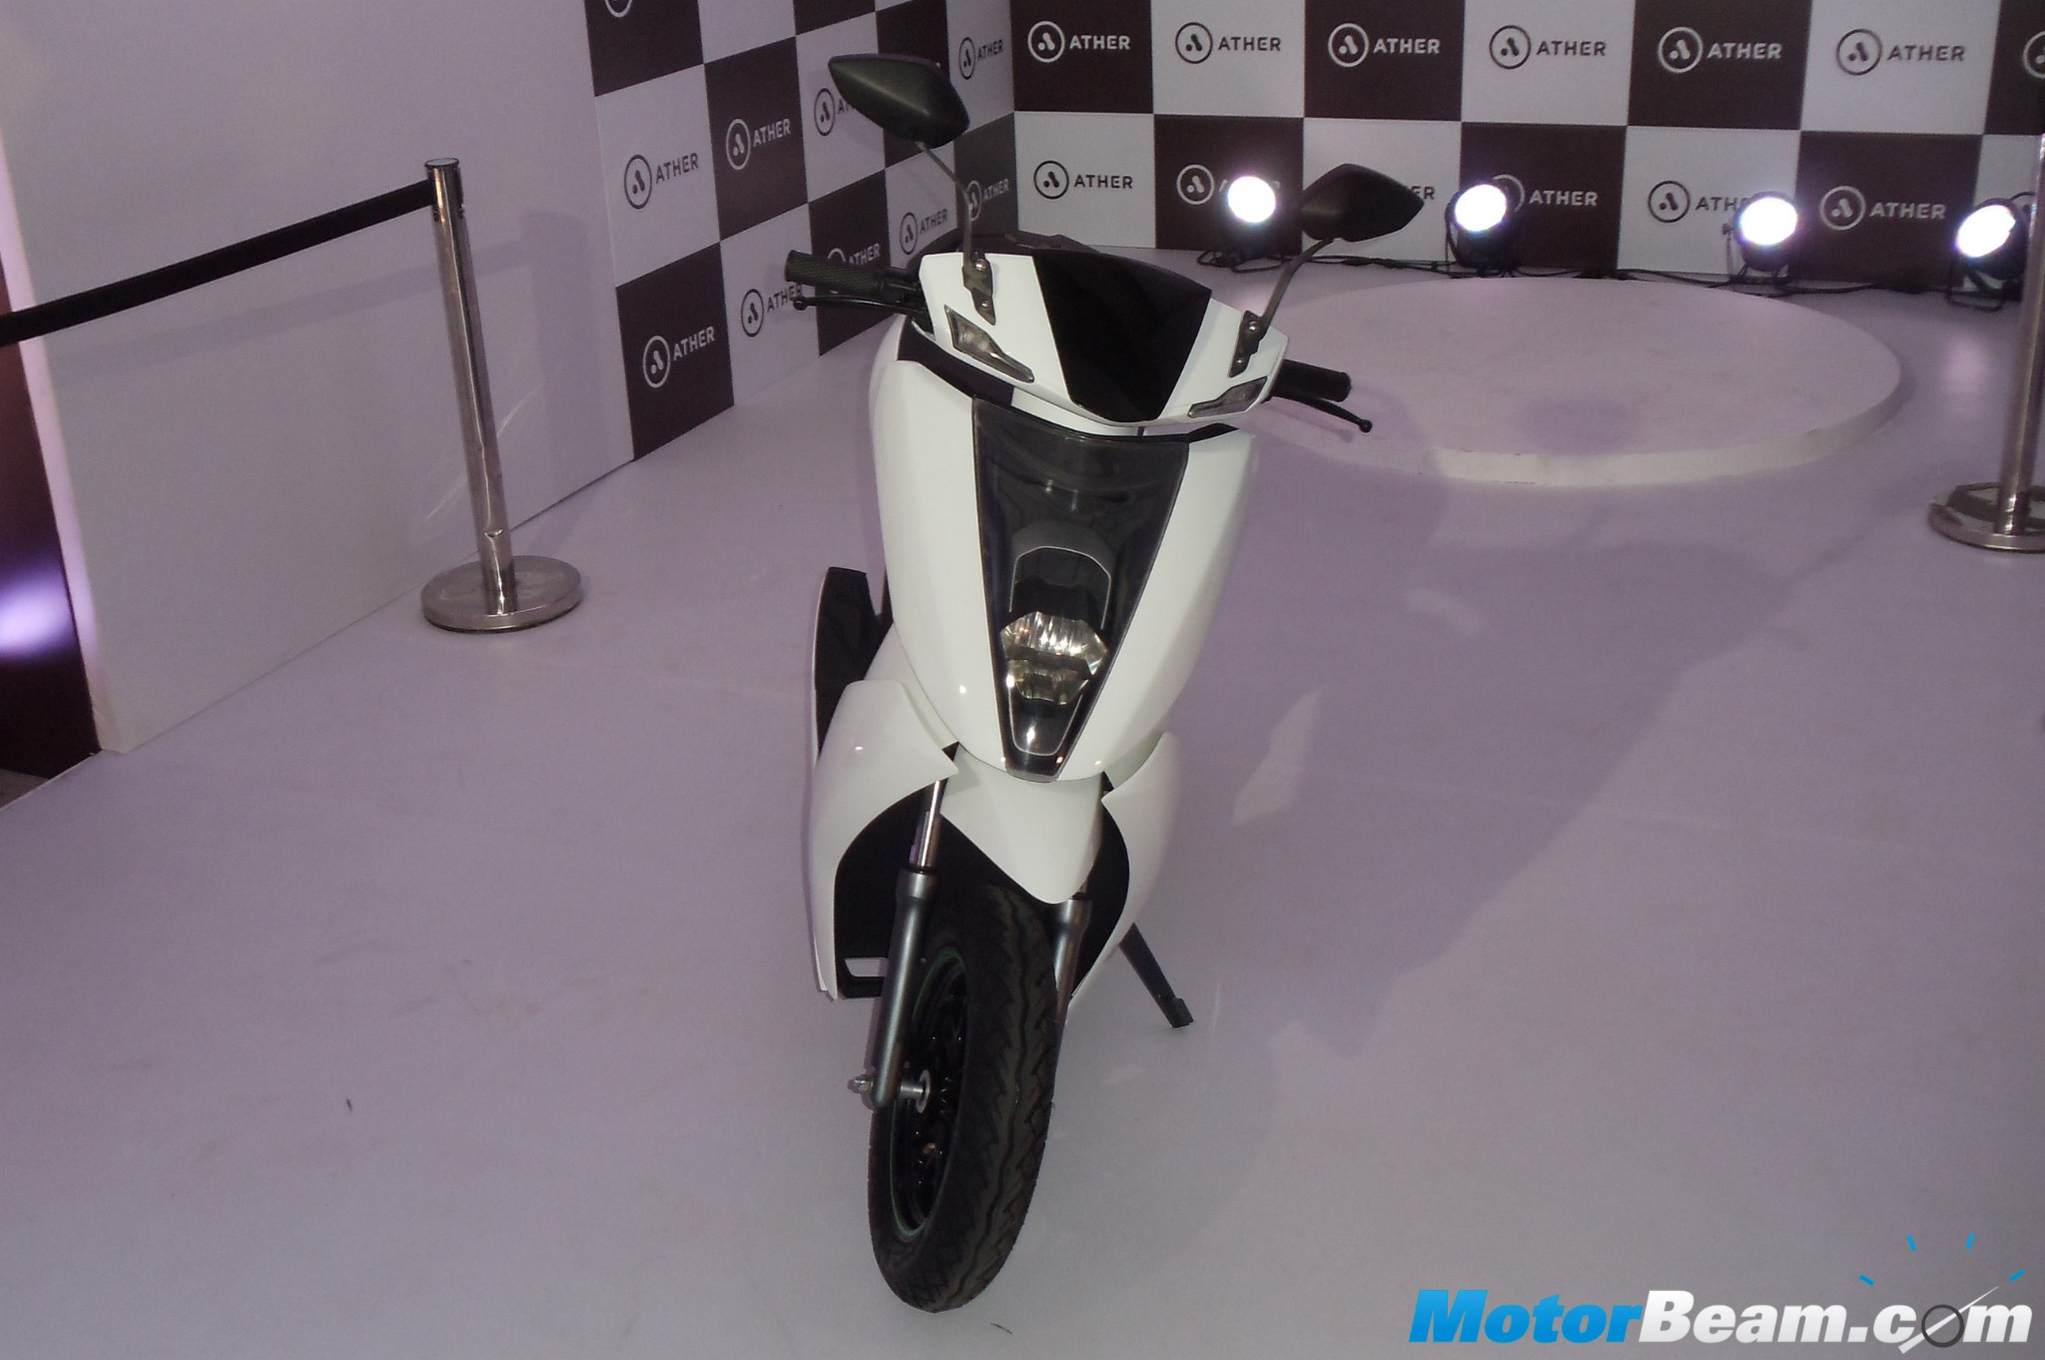 2016 Ather S340 Front